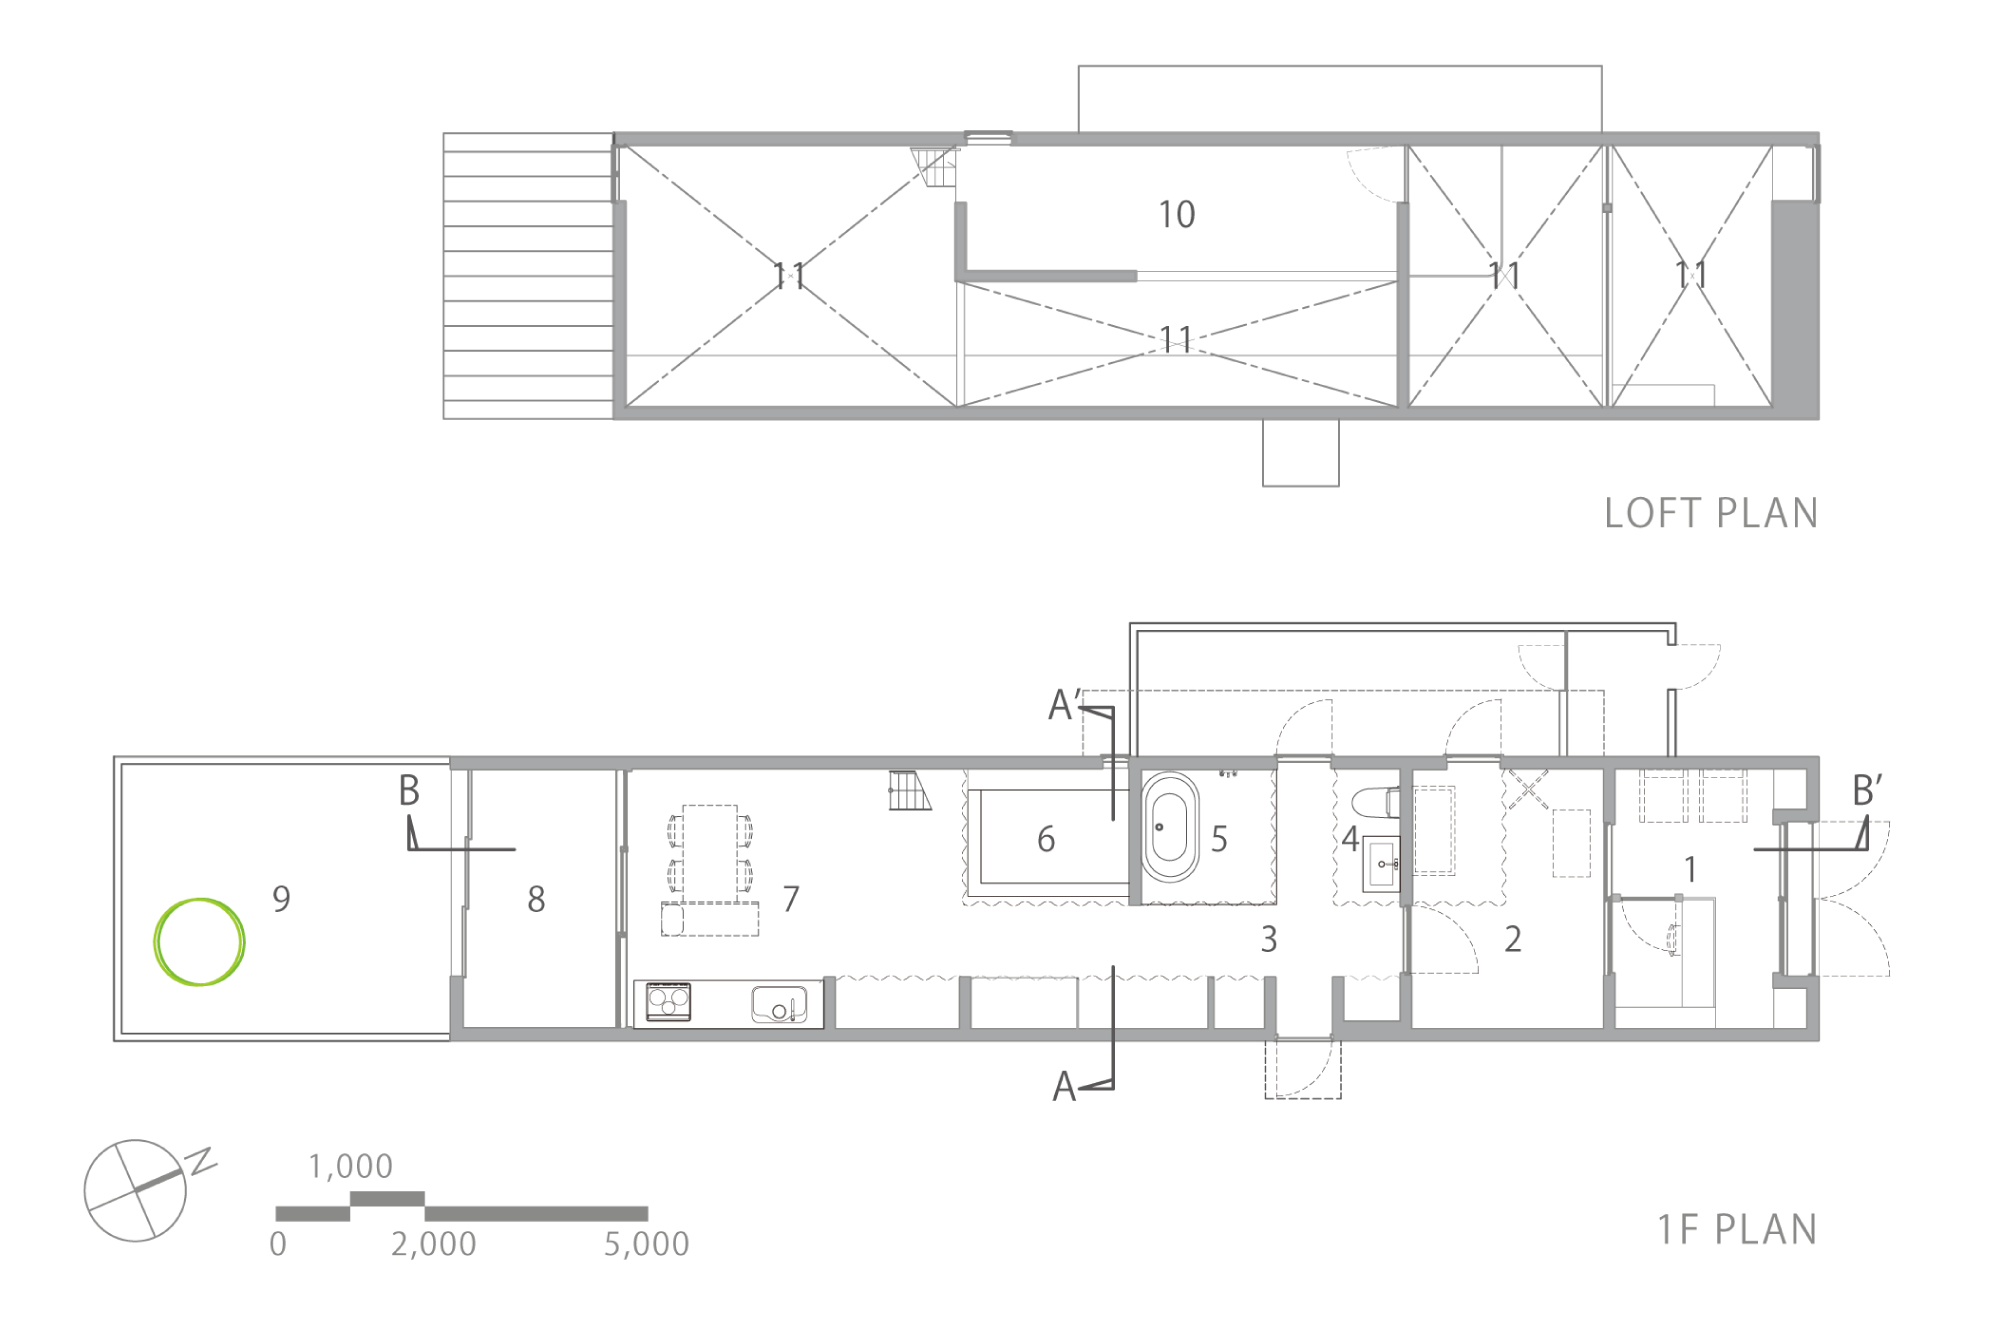 28 dog grooming salon floor plans dog grooming for Dog grooming salon floor plans